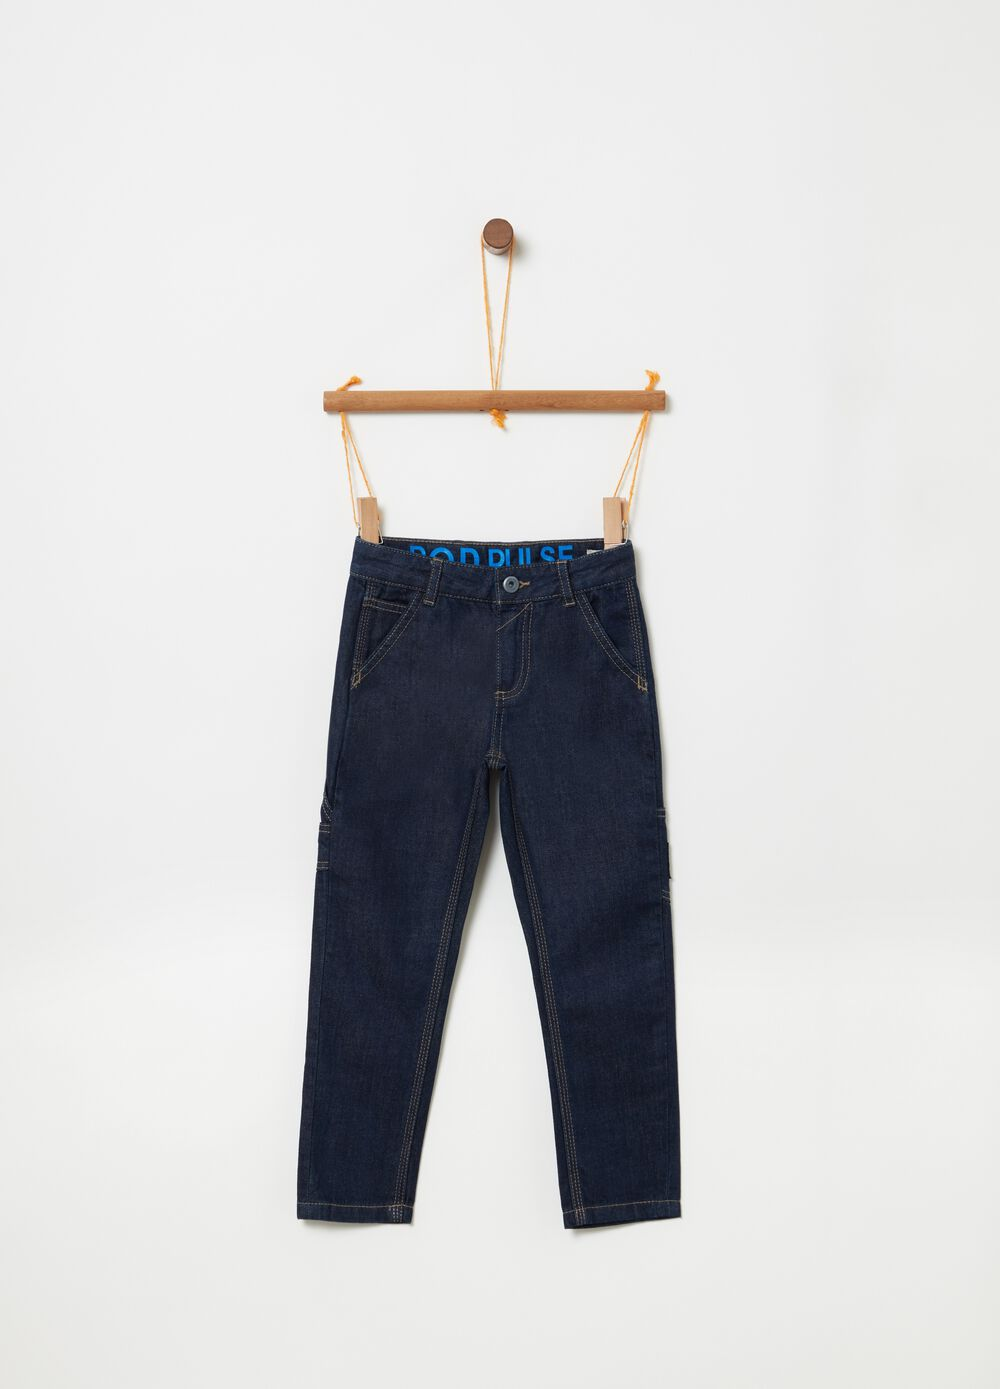 Regular-fit jeans with pockets on the sides